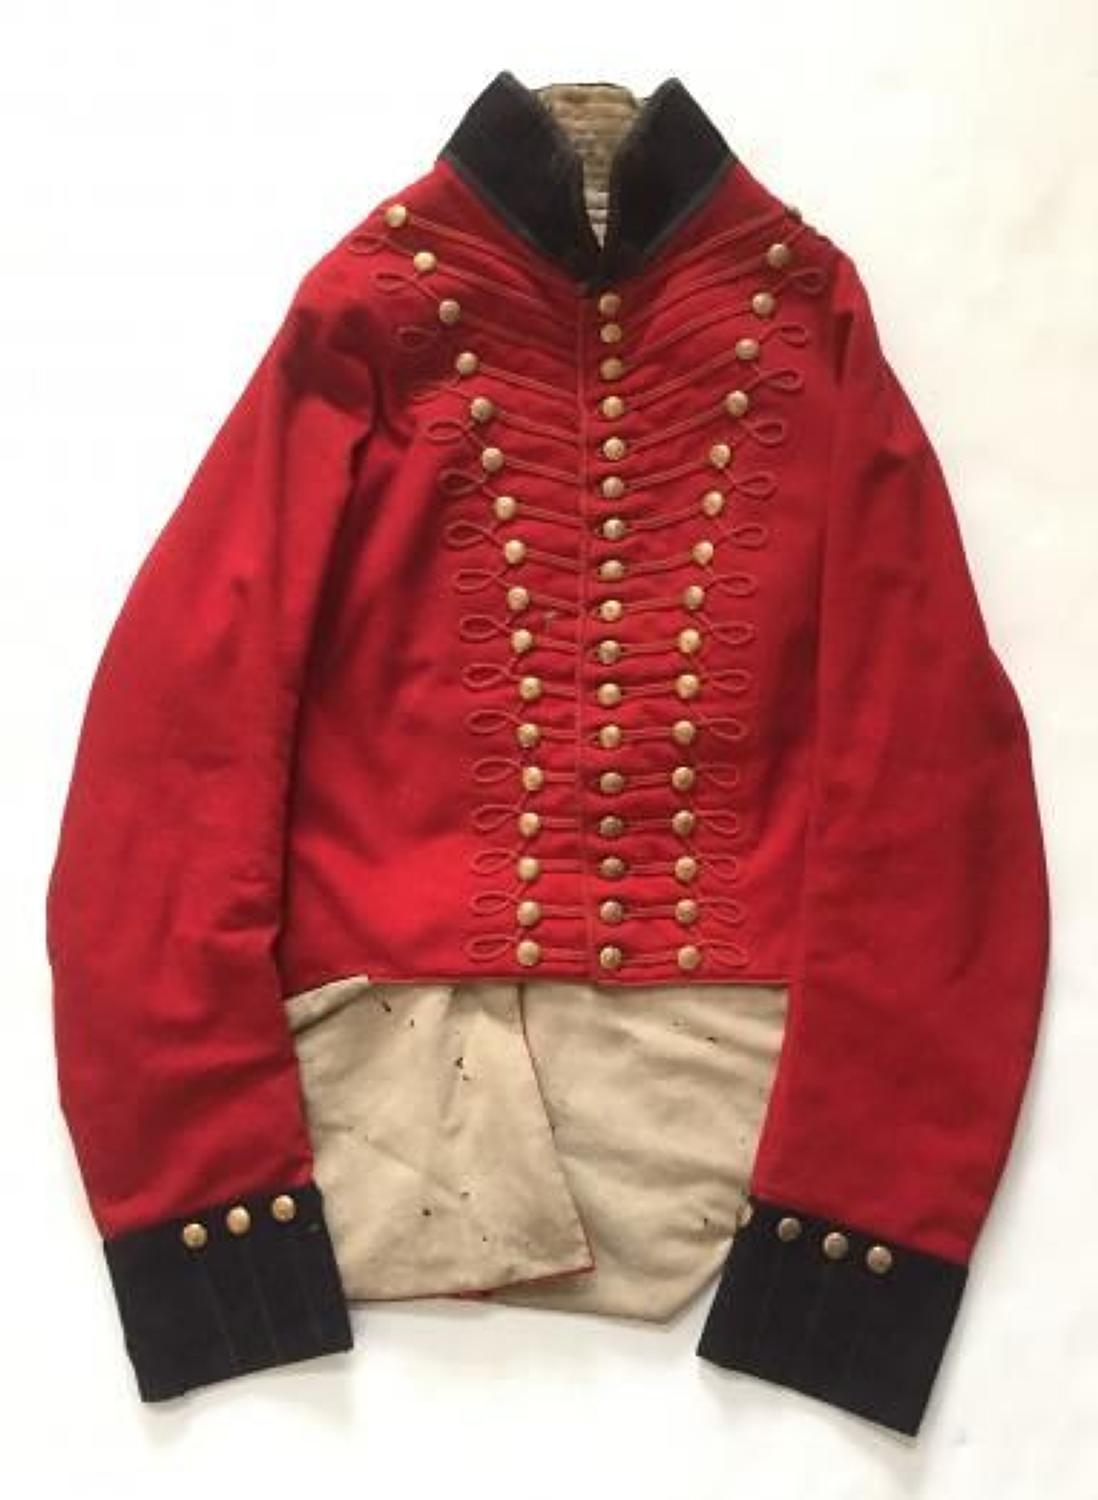 Manchester Local Militia George III Officer's coatee circa 1808-16